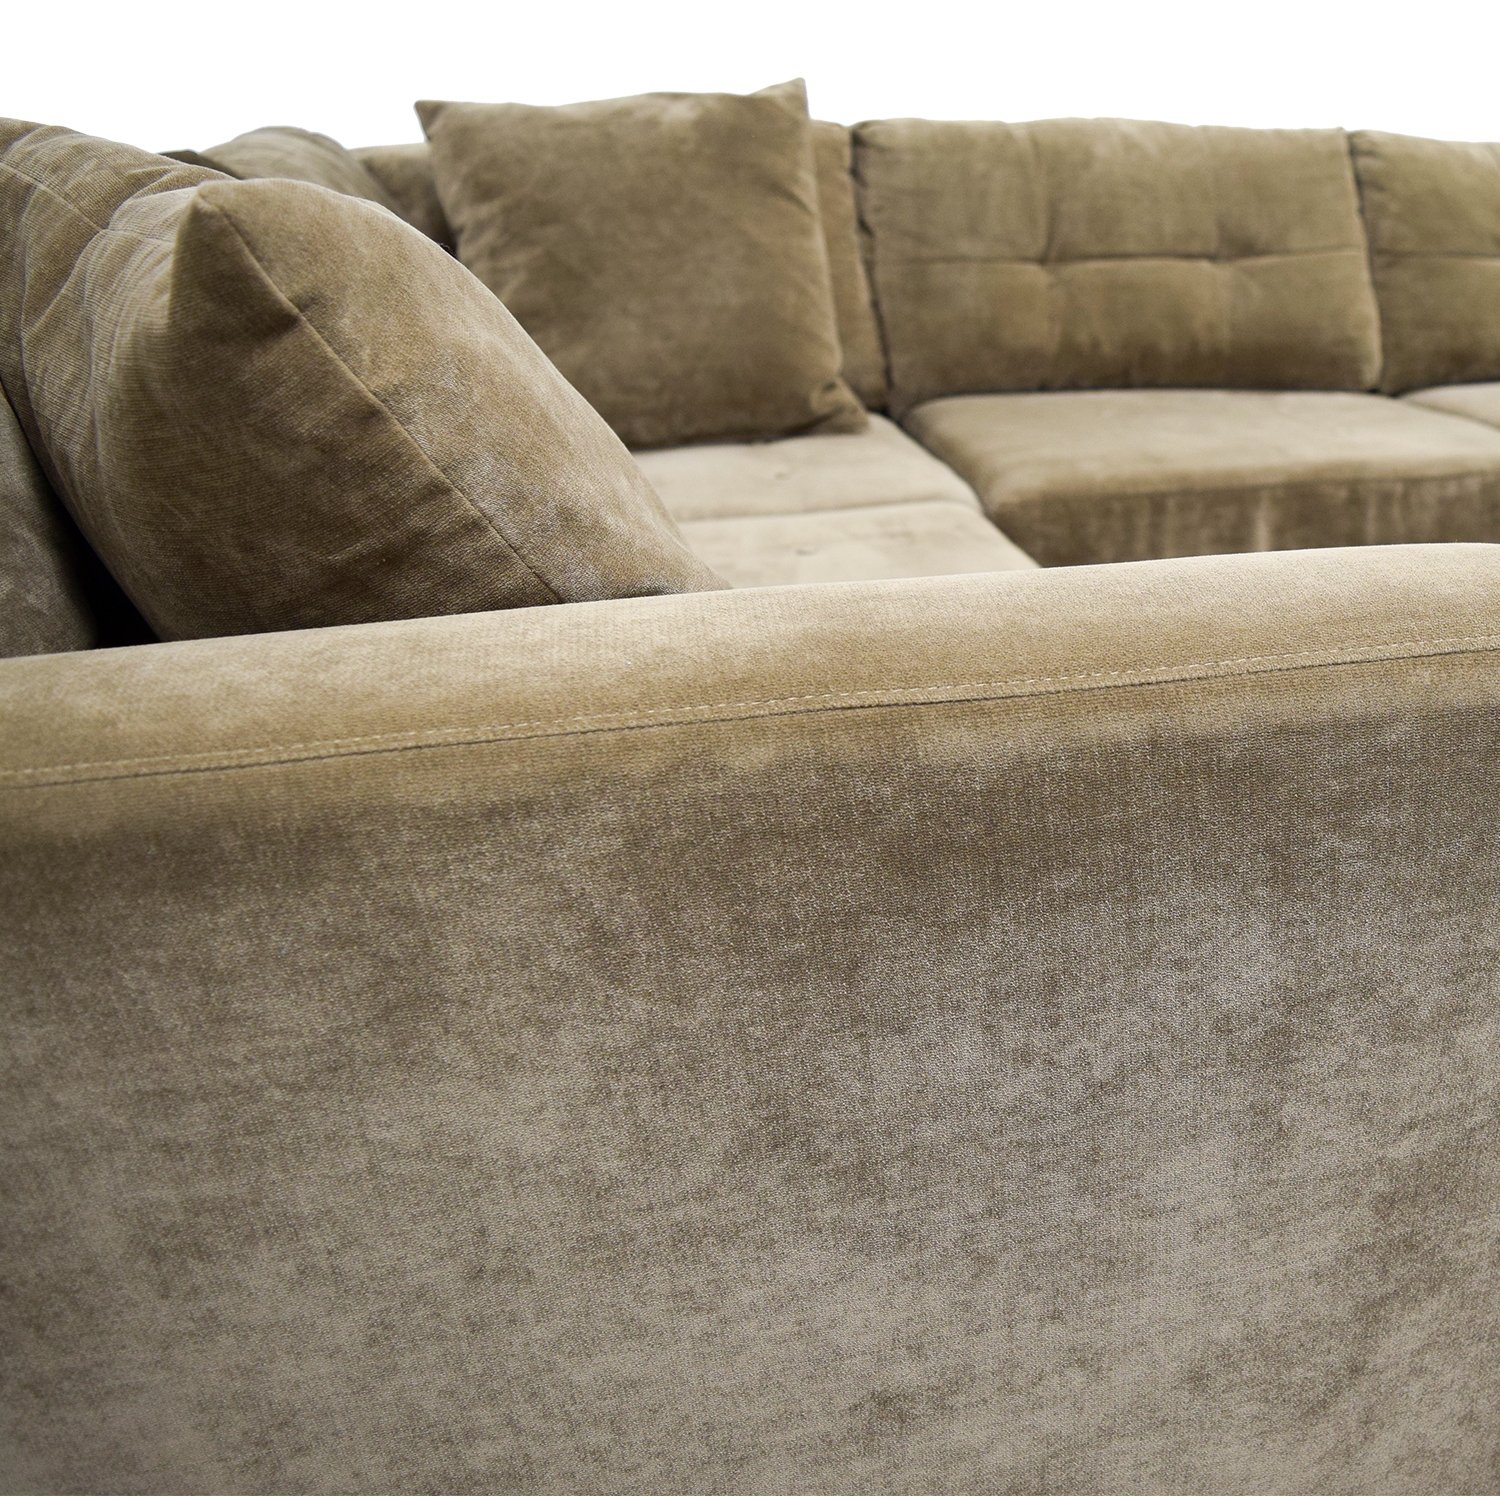 for elliot cheap furniture sectional extraordinary couches sale couch macys